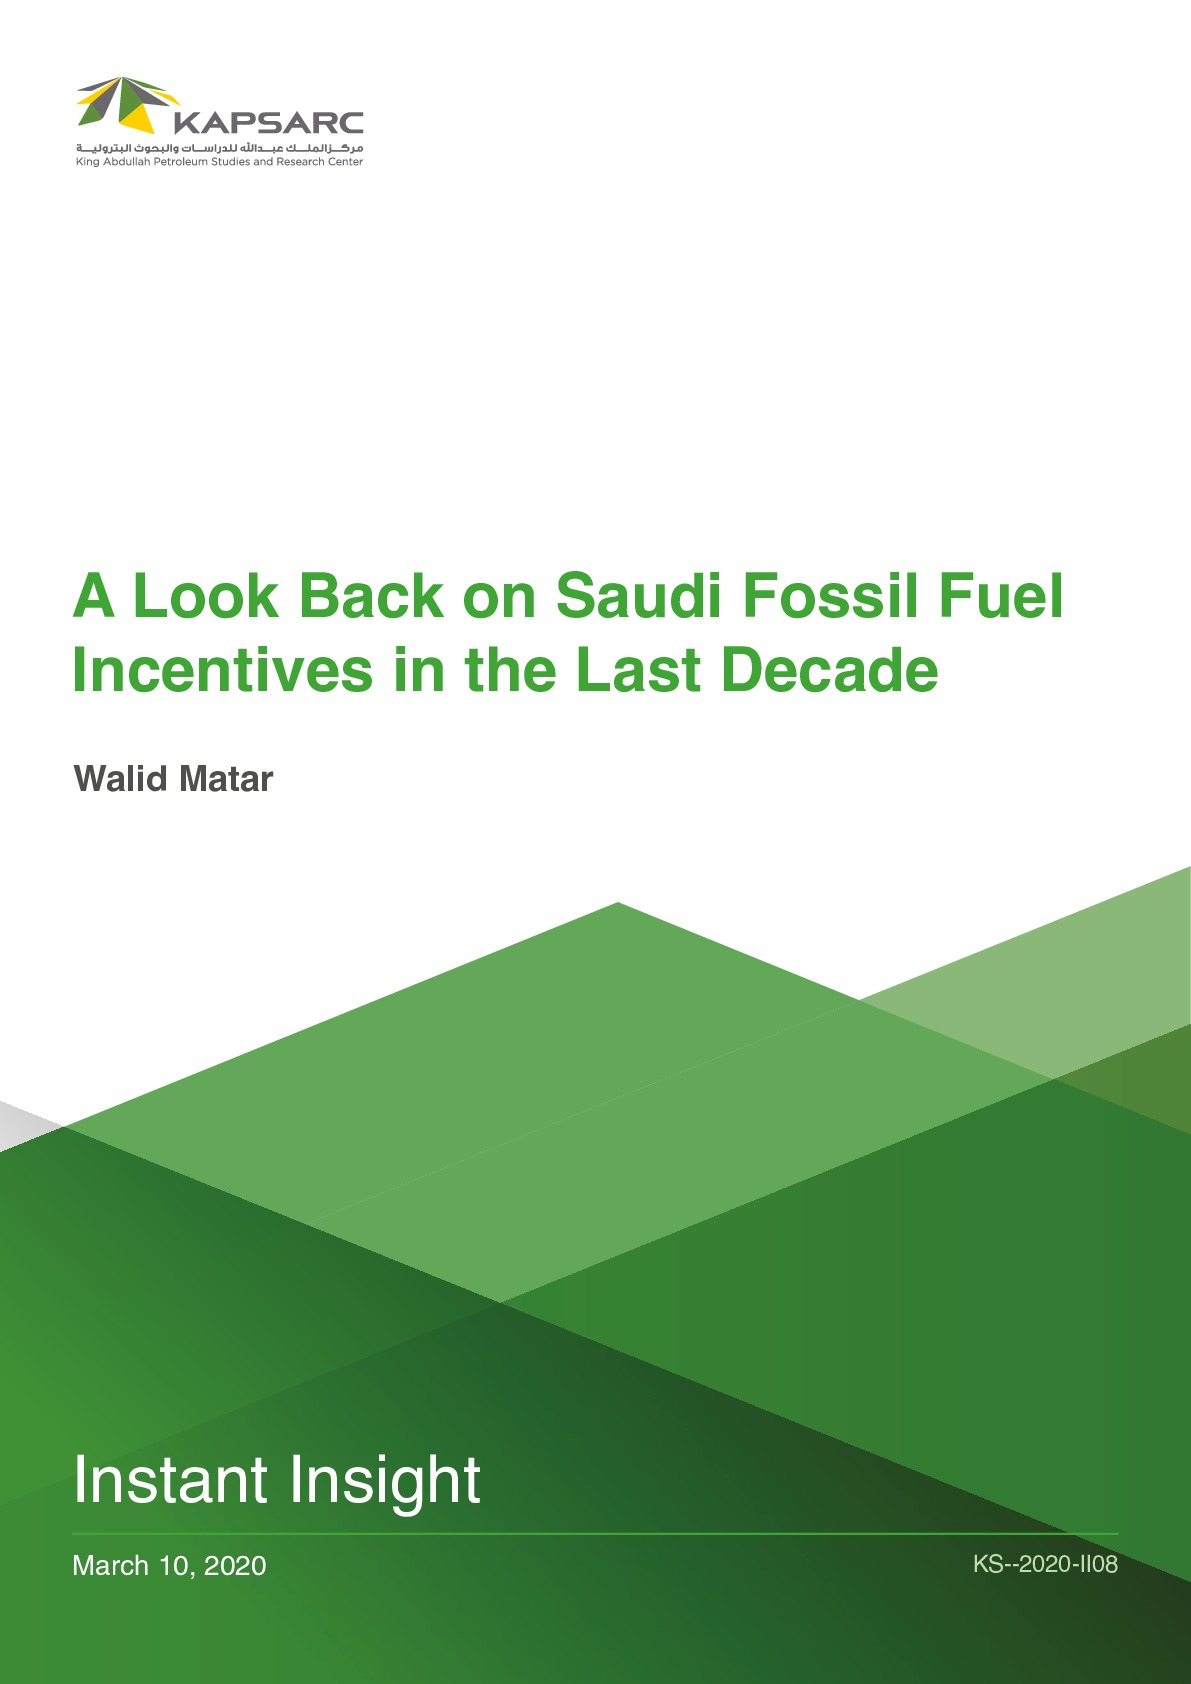 A Look Back on Saudi Fossil Fuel Incentives in the Last Decade